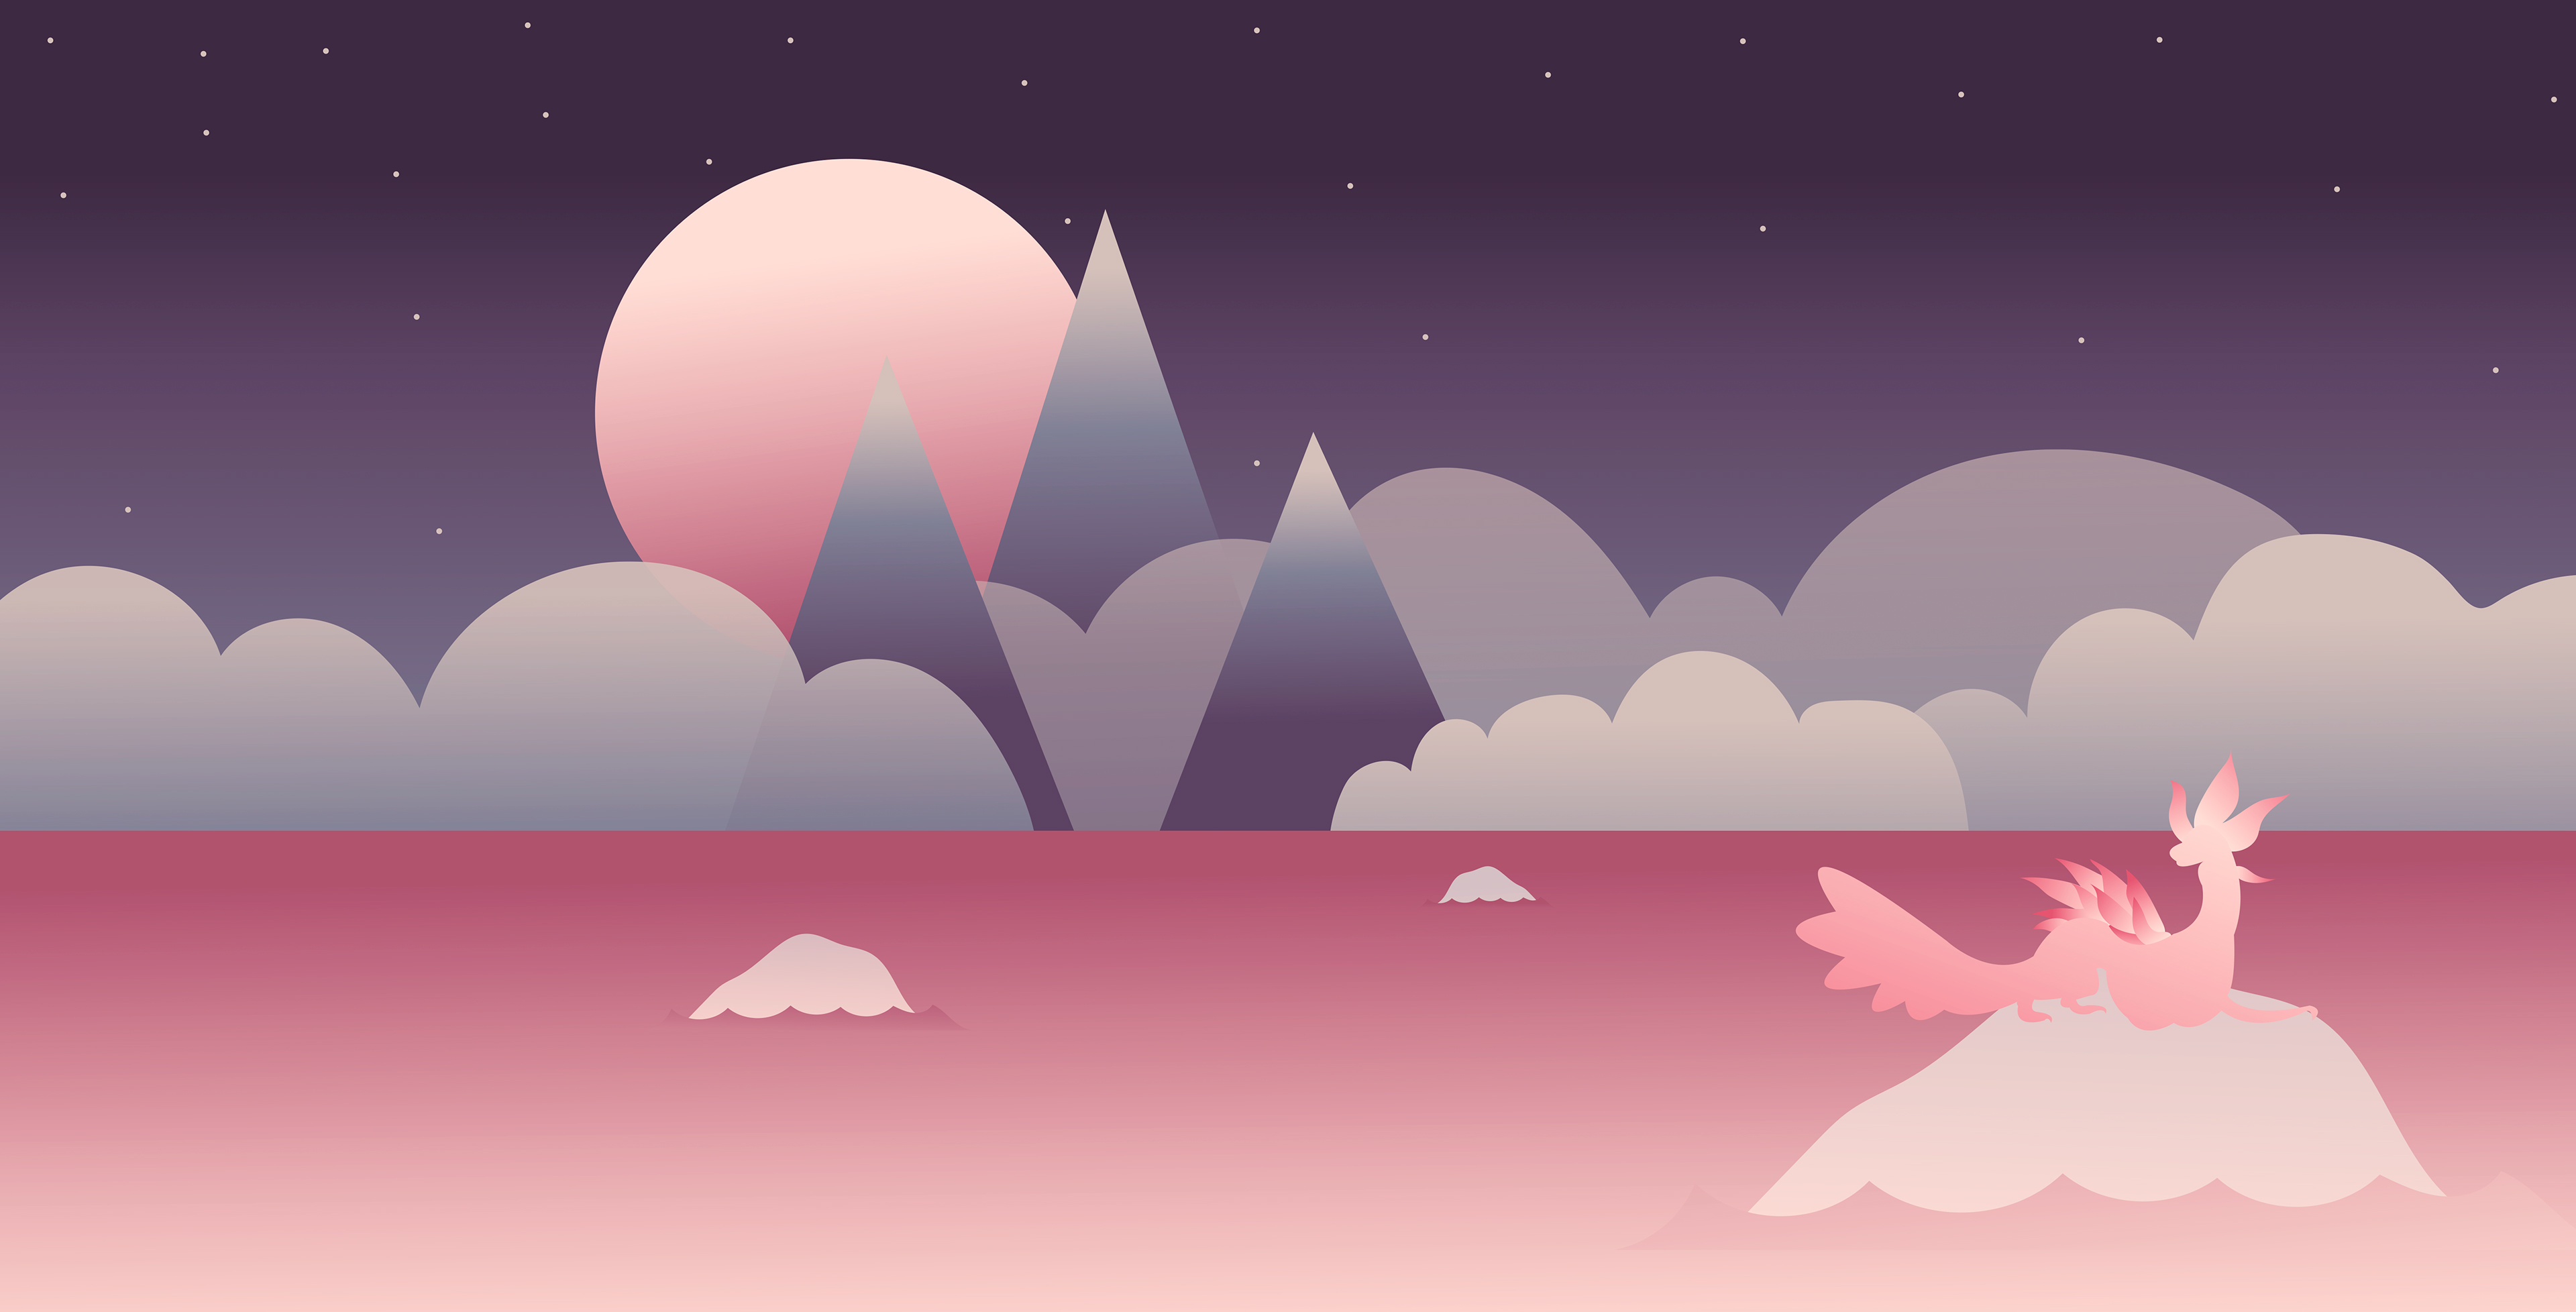 Pink World Minimalist Hd Artist 4k Wallpapers Images Backgrounds Photos And Pictures